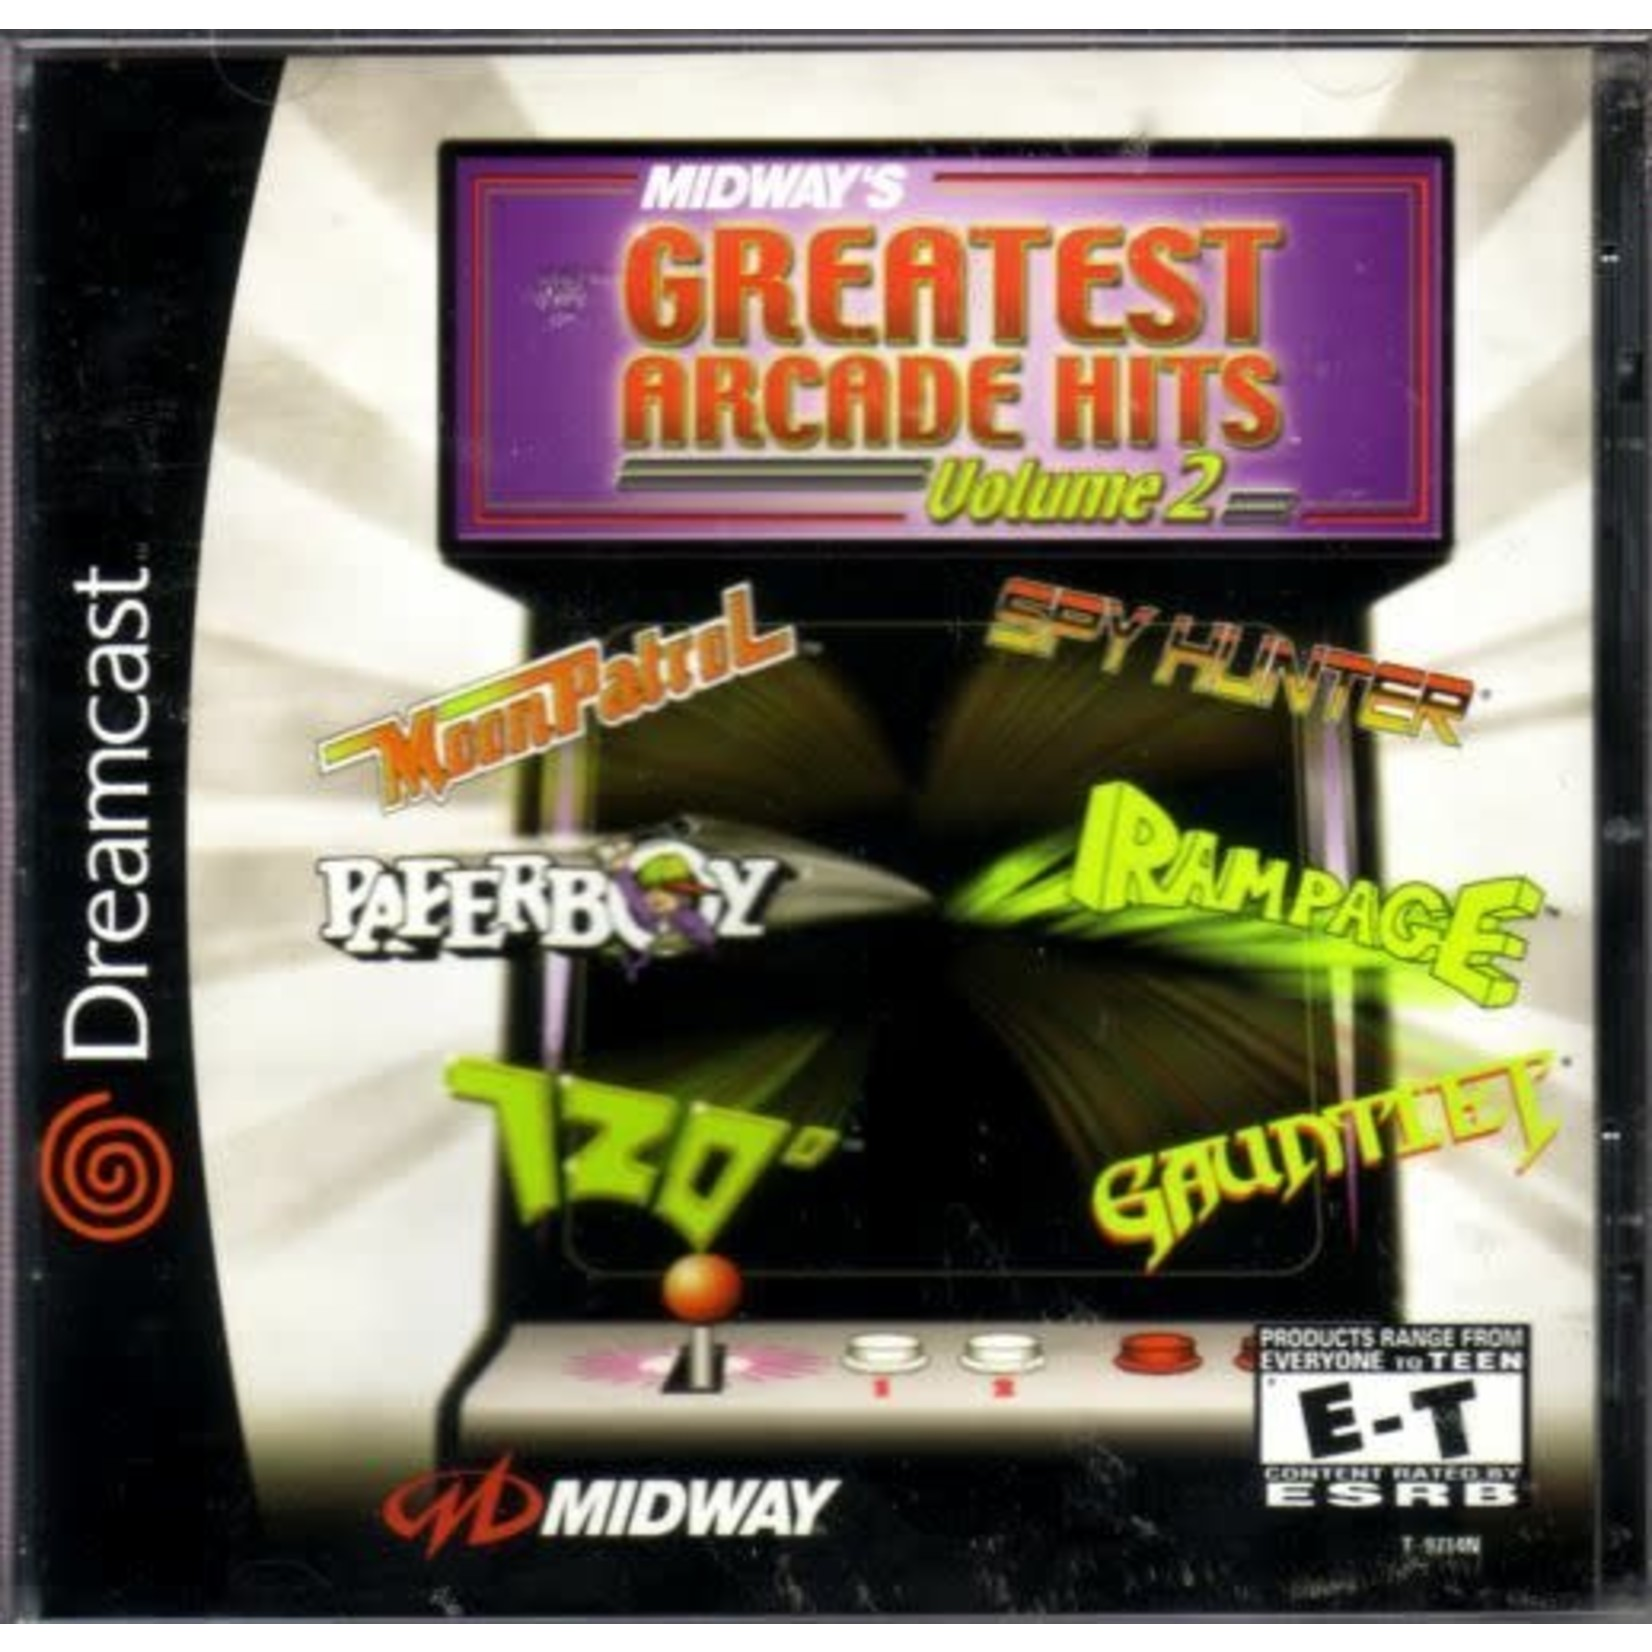 SDCU-Midway's Greatest Arcade Hits Volume 2